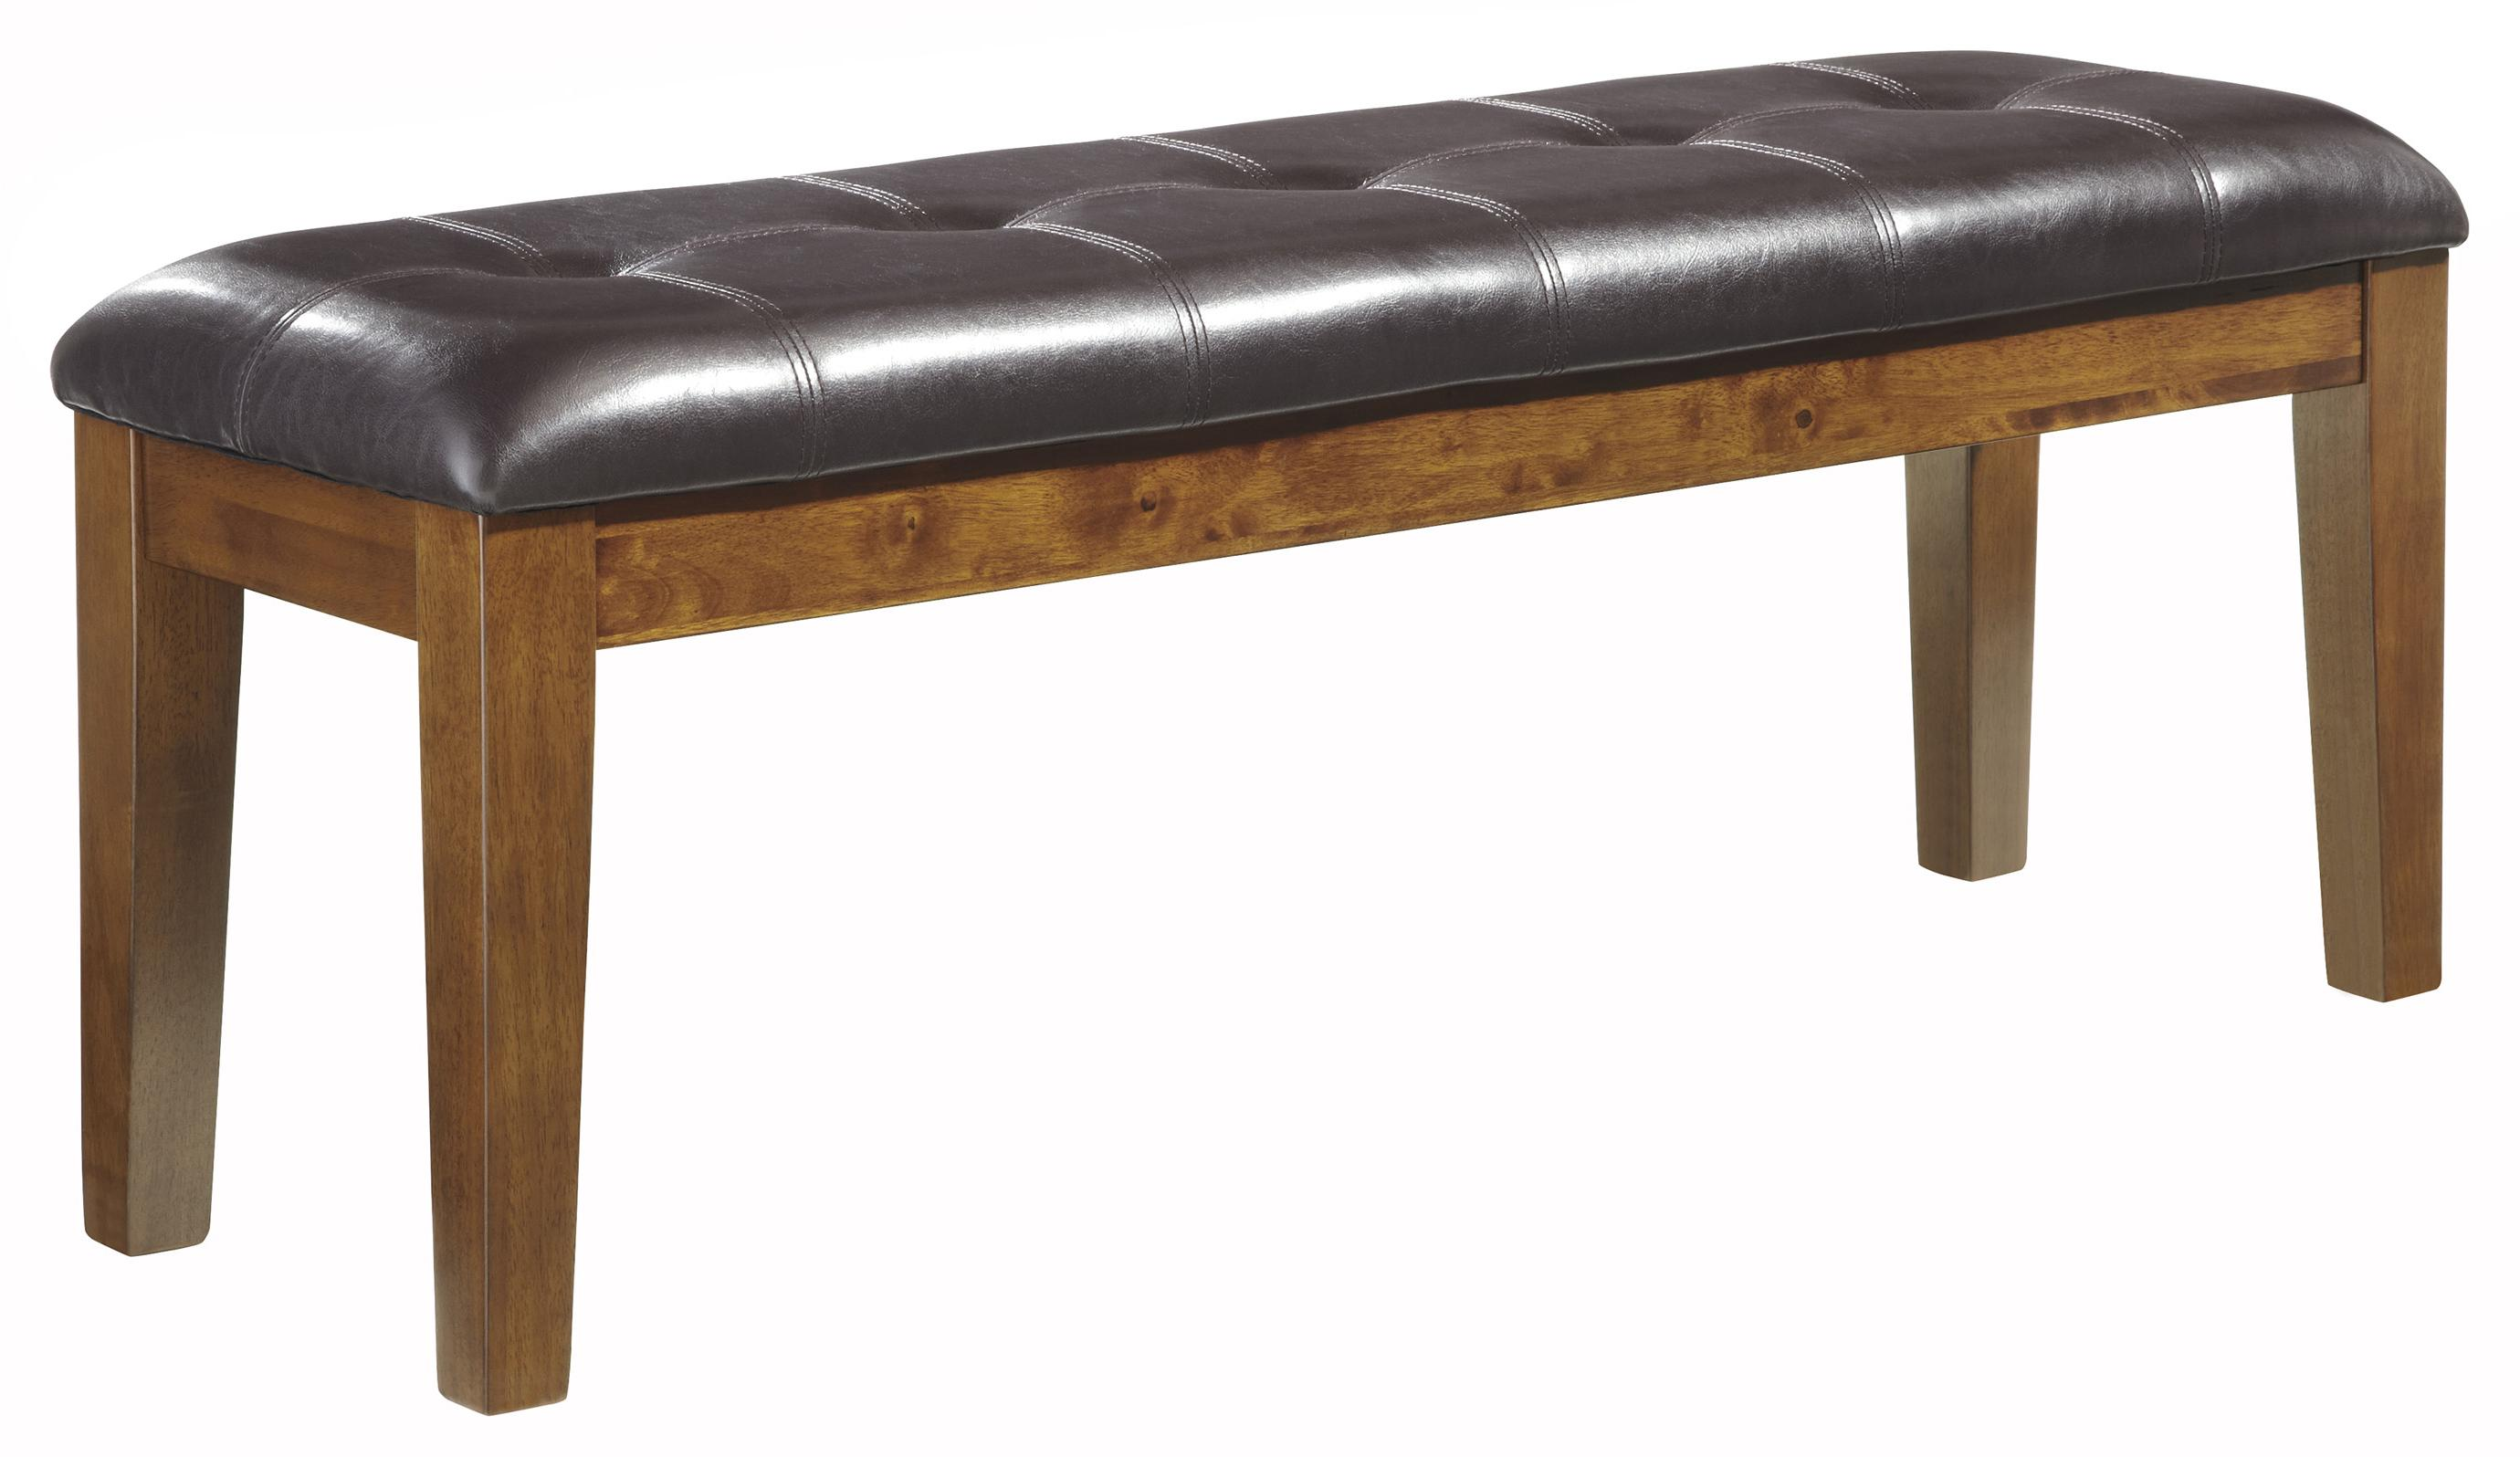 Signature Design by Ashley Ralene Large UPH Dining Room Bench - Item Number: D594-00